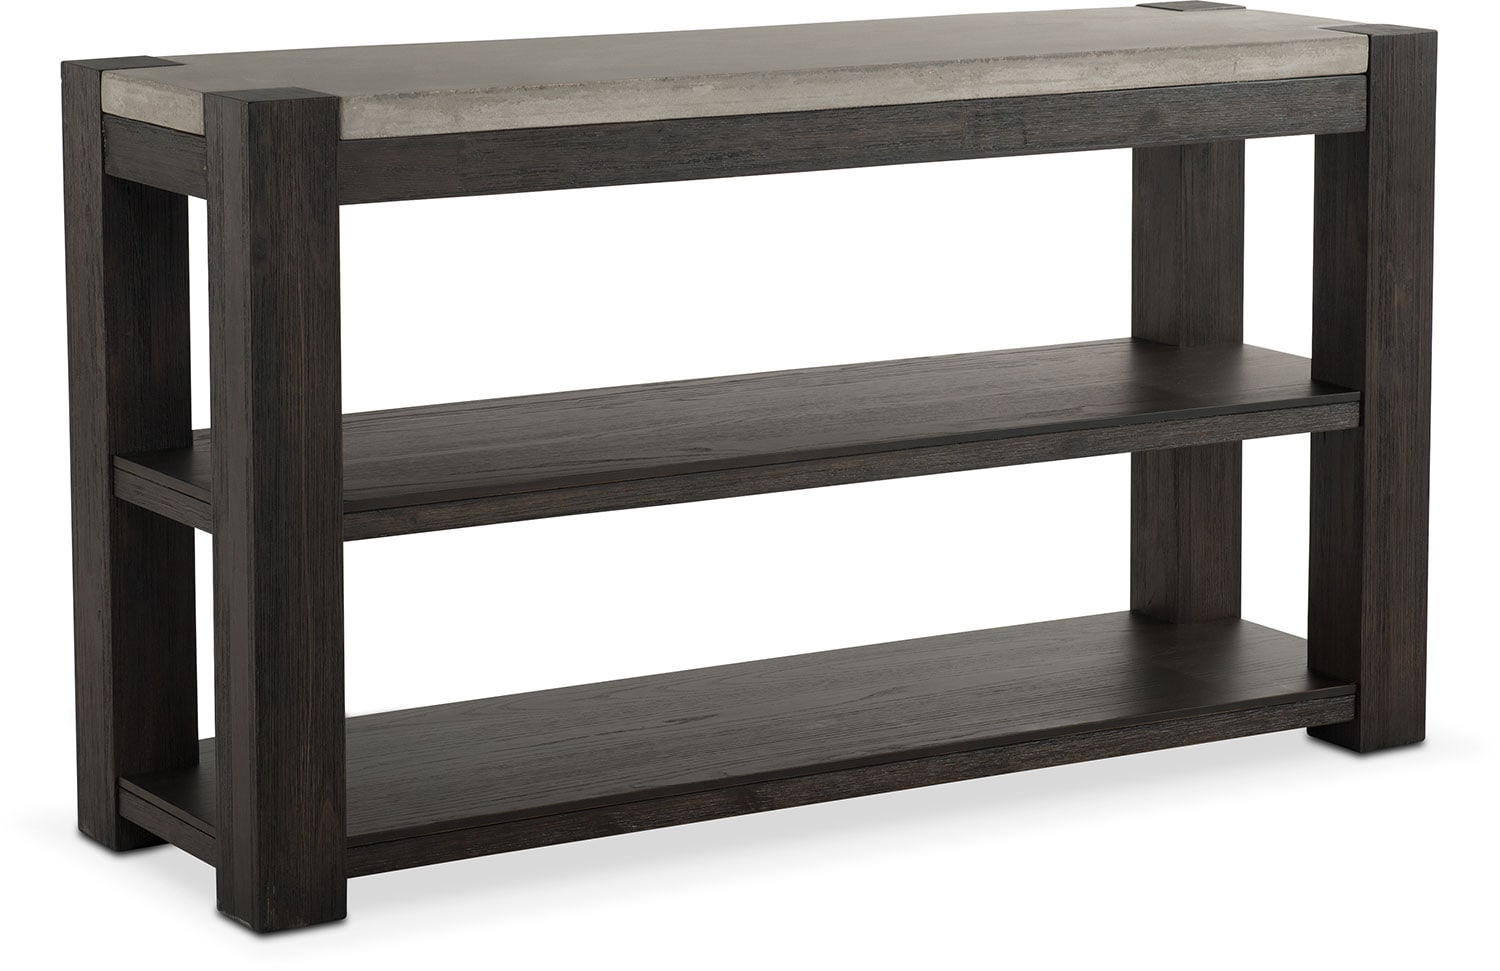 Kellen Sofa Table - Umber